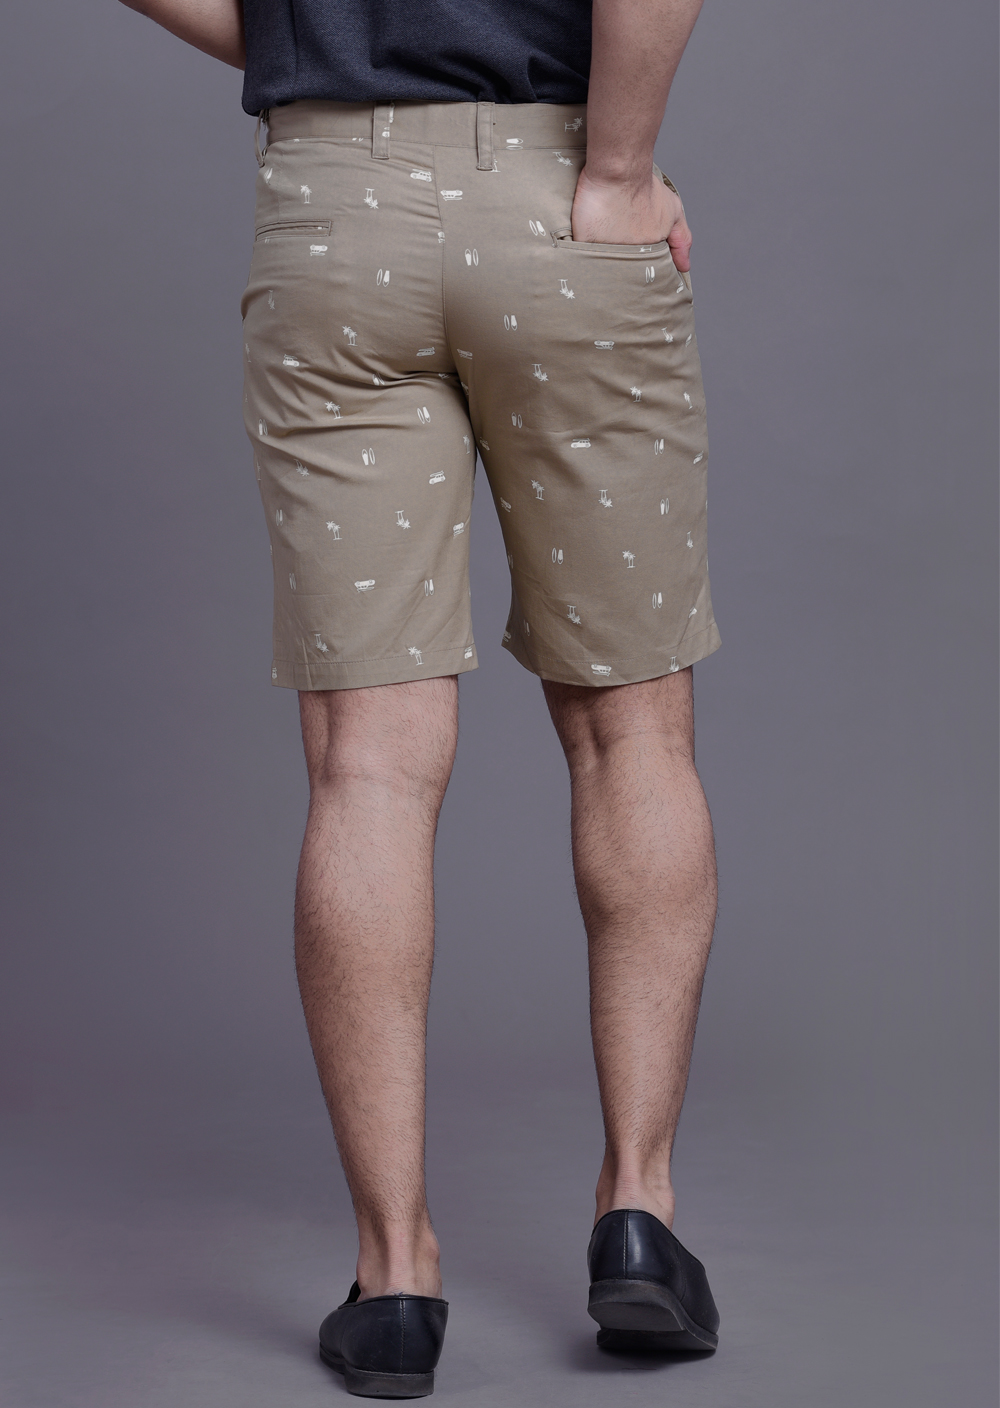 Sandcastle printed shorts